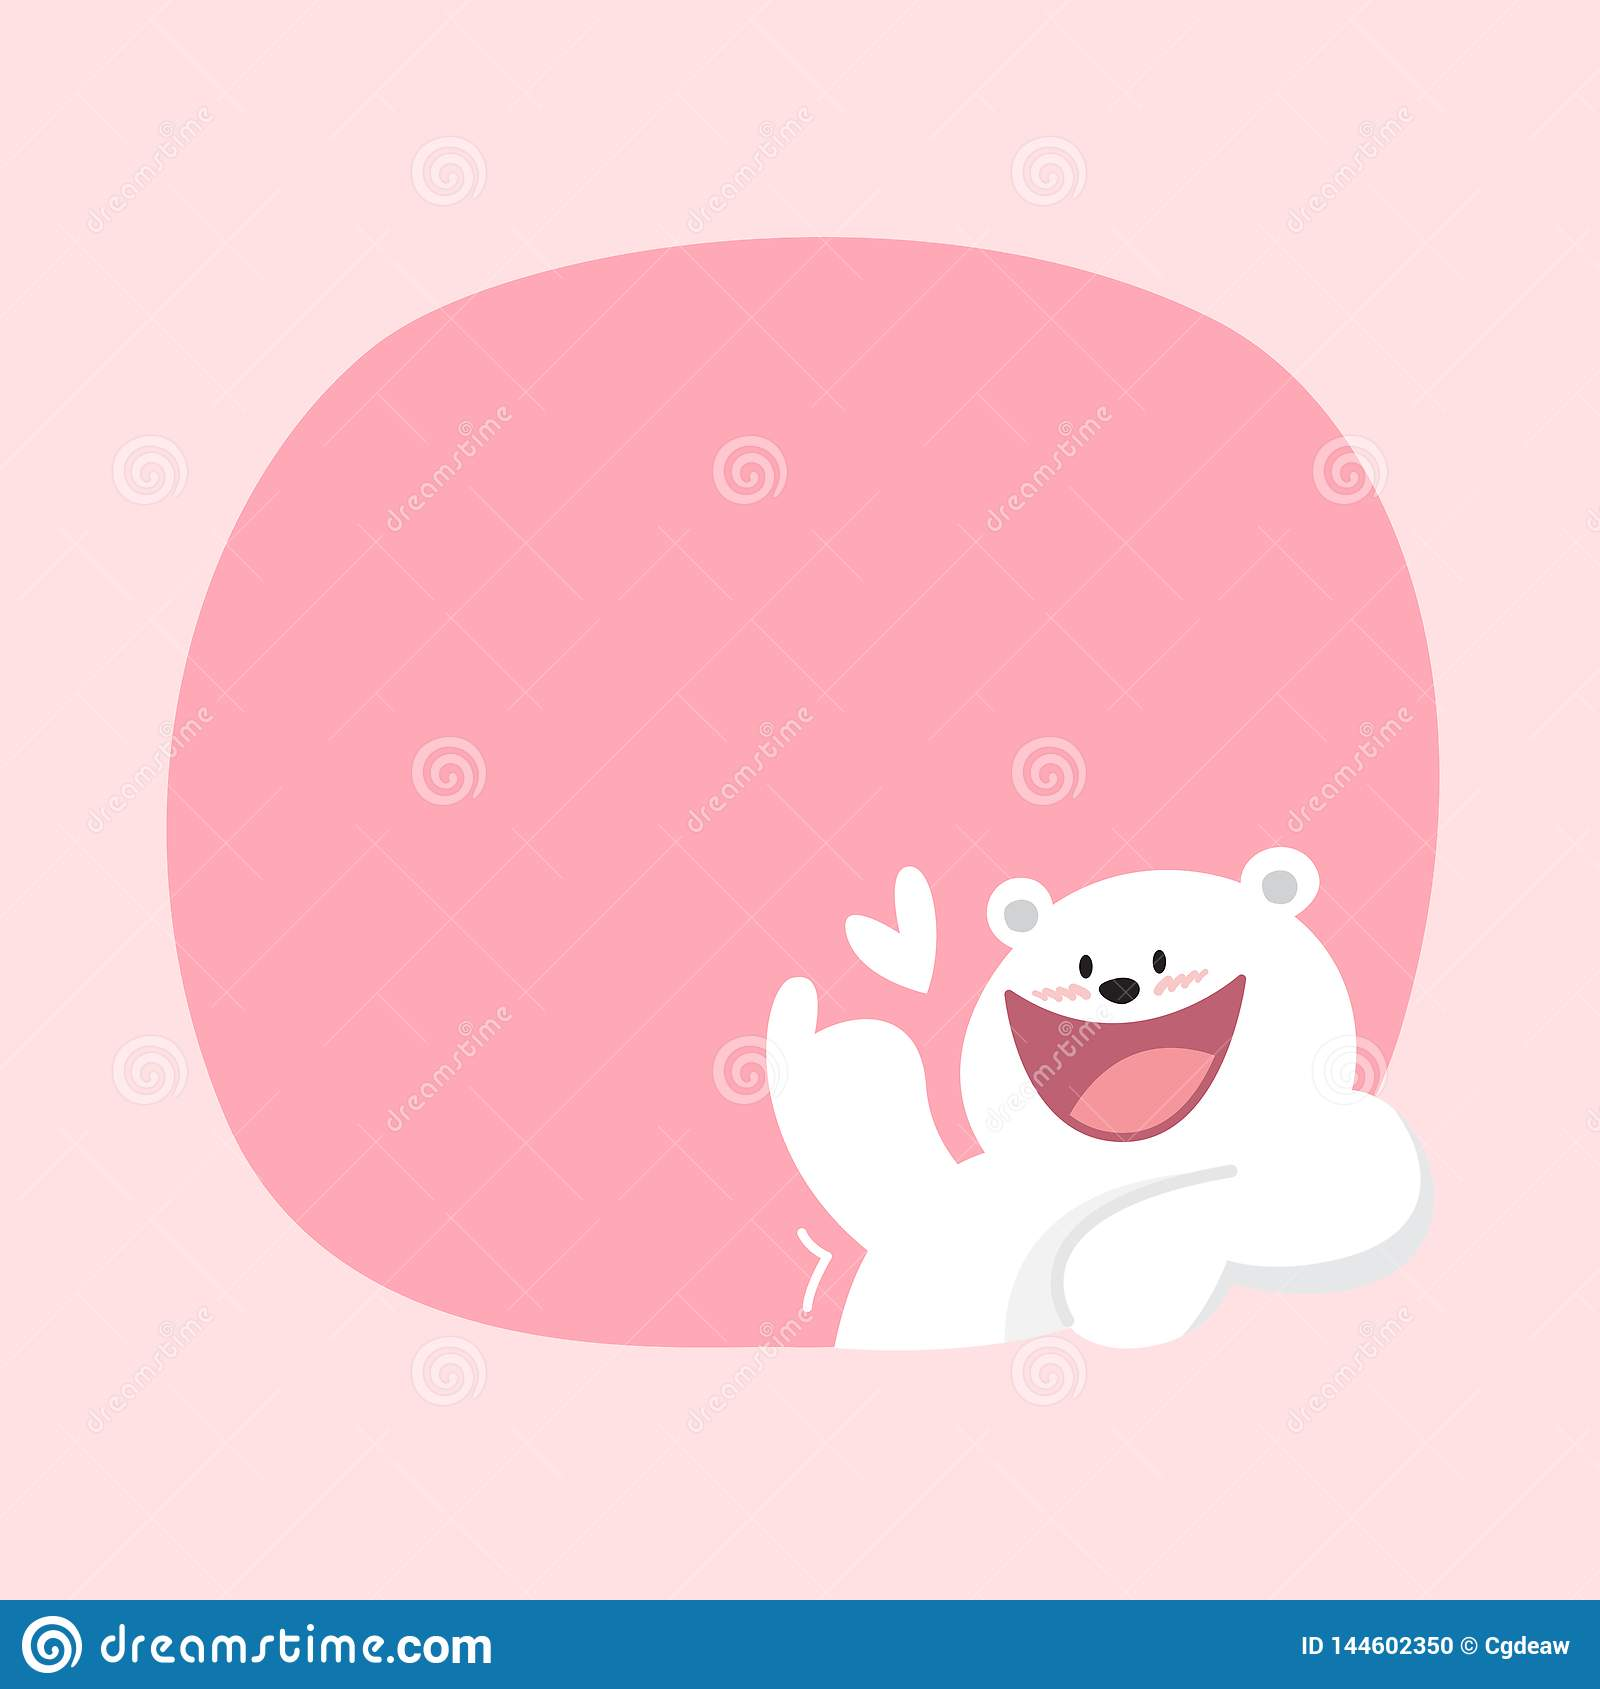 White Bear Cartoon Character Cute On Pink Pastel Color Background For Banner Copy Space Empty White Bear On Speech Bubble Stock Vector Illustration Of Happy Animals 144602350